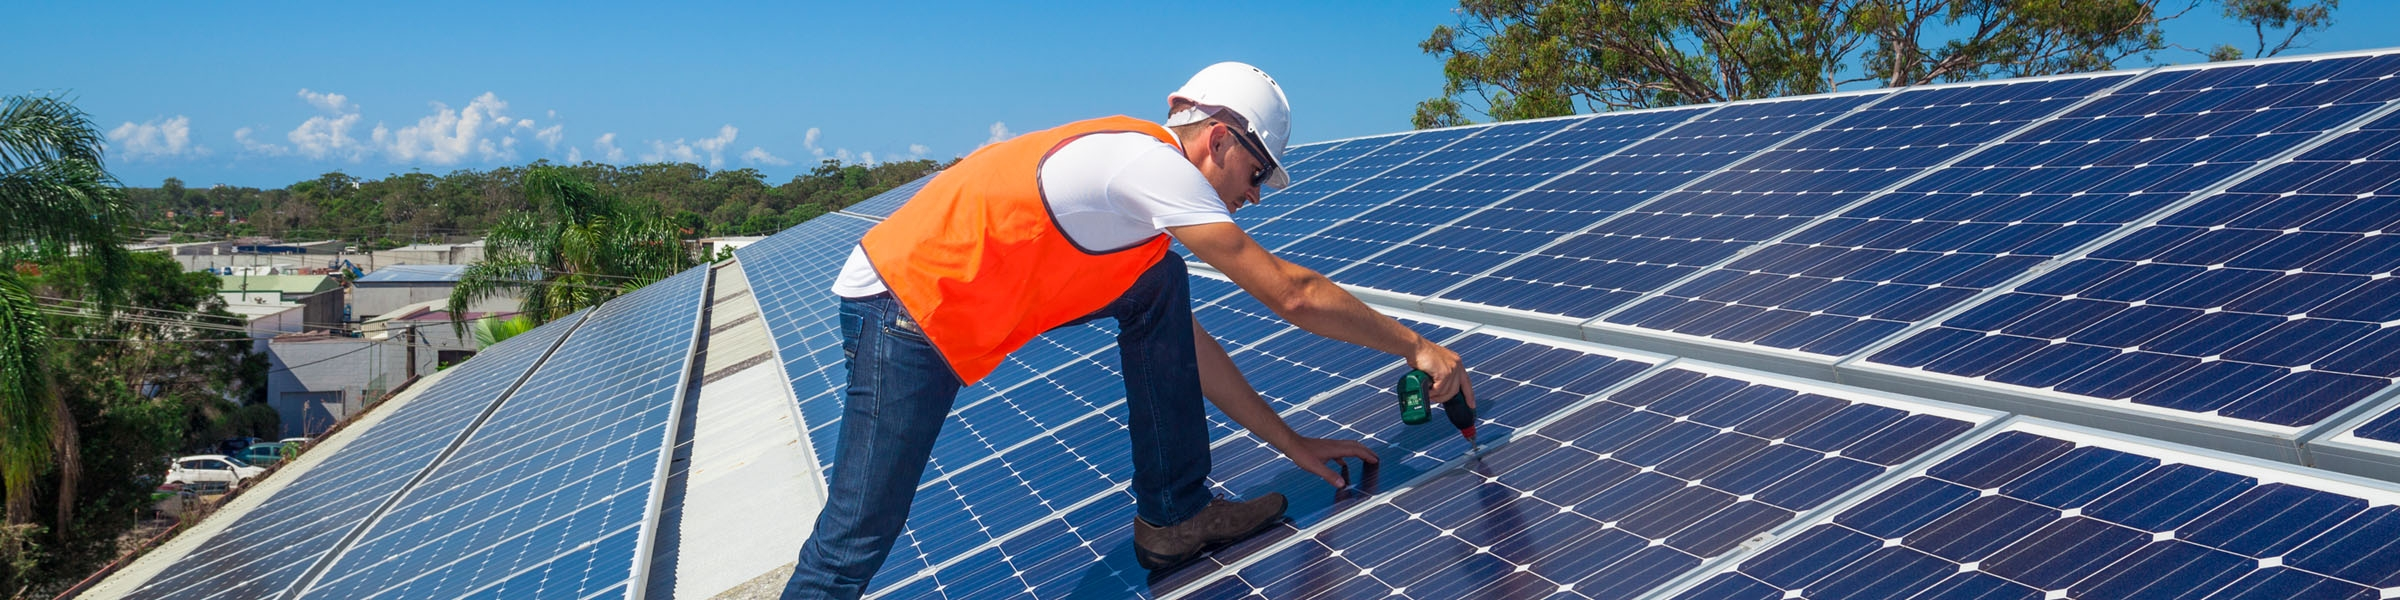 Smart Energy Bringing Solar to Florida Homeowners Image